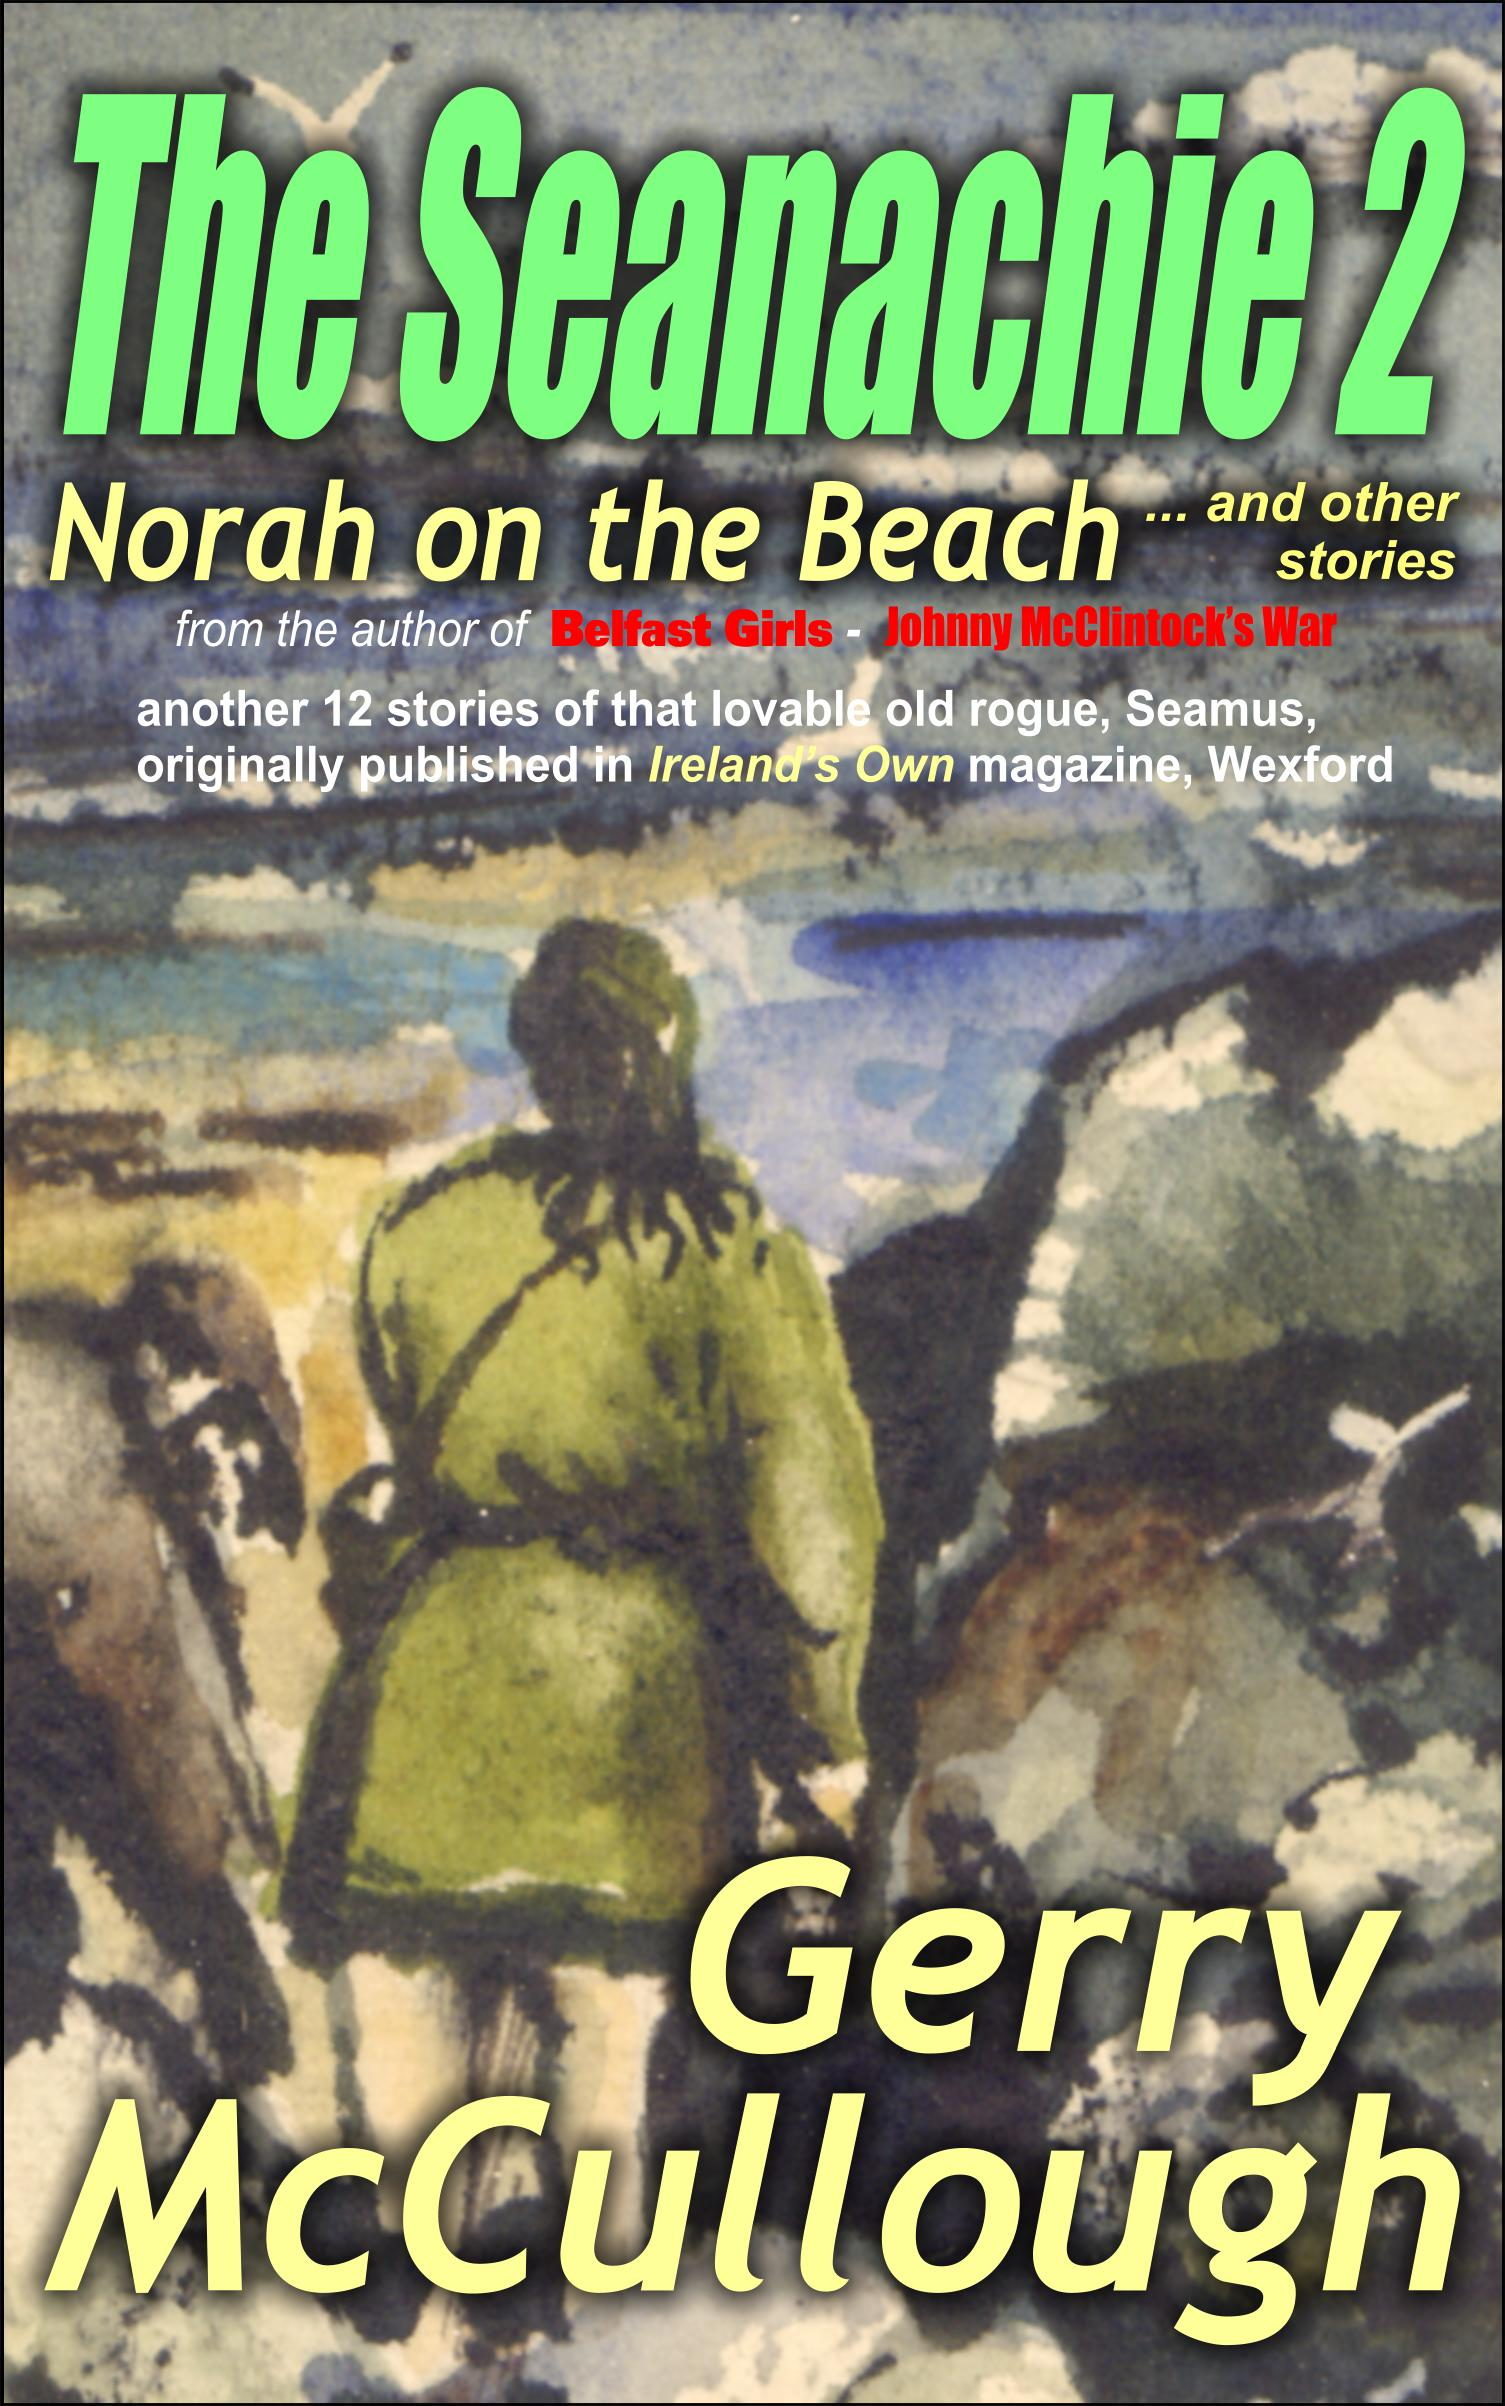 The Seanachie 2: Norah on the Beach - more info